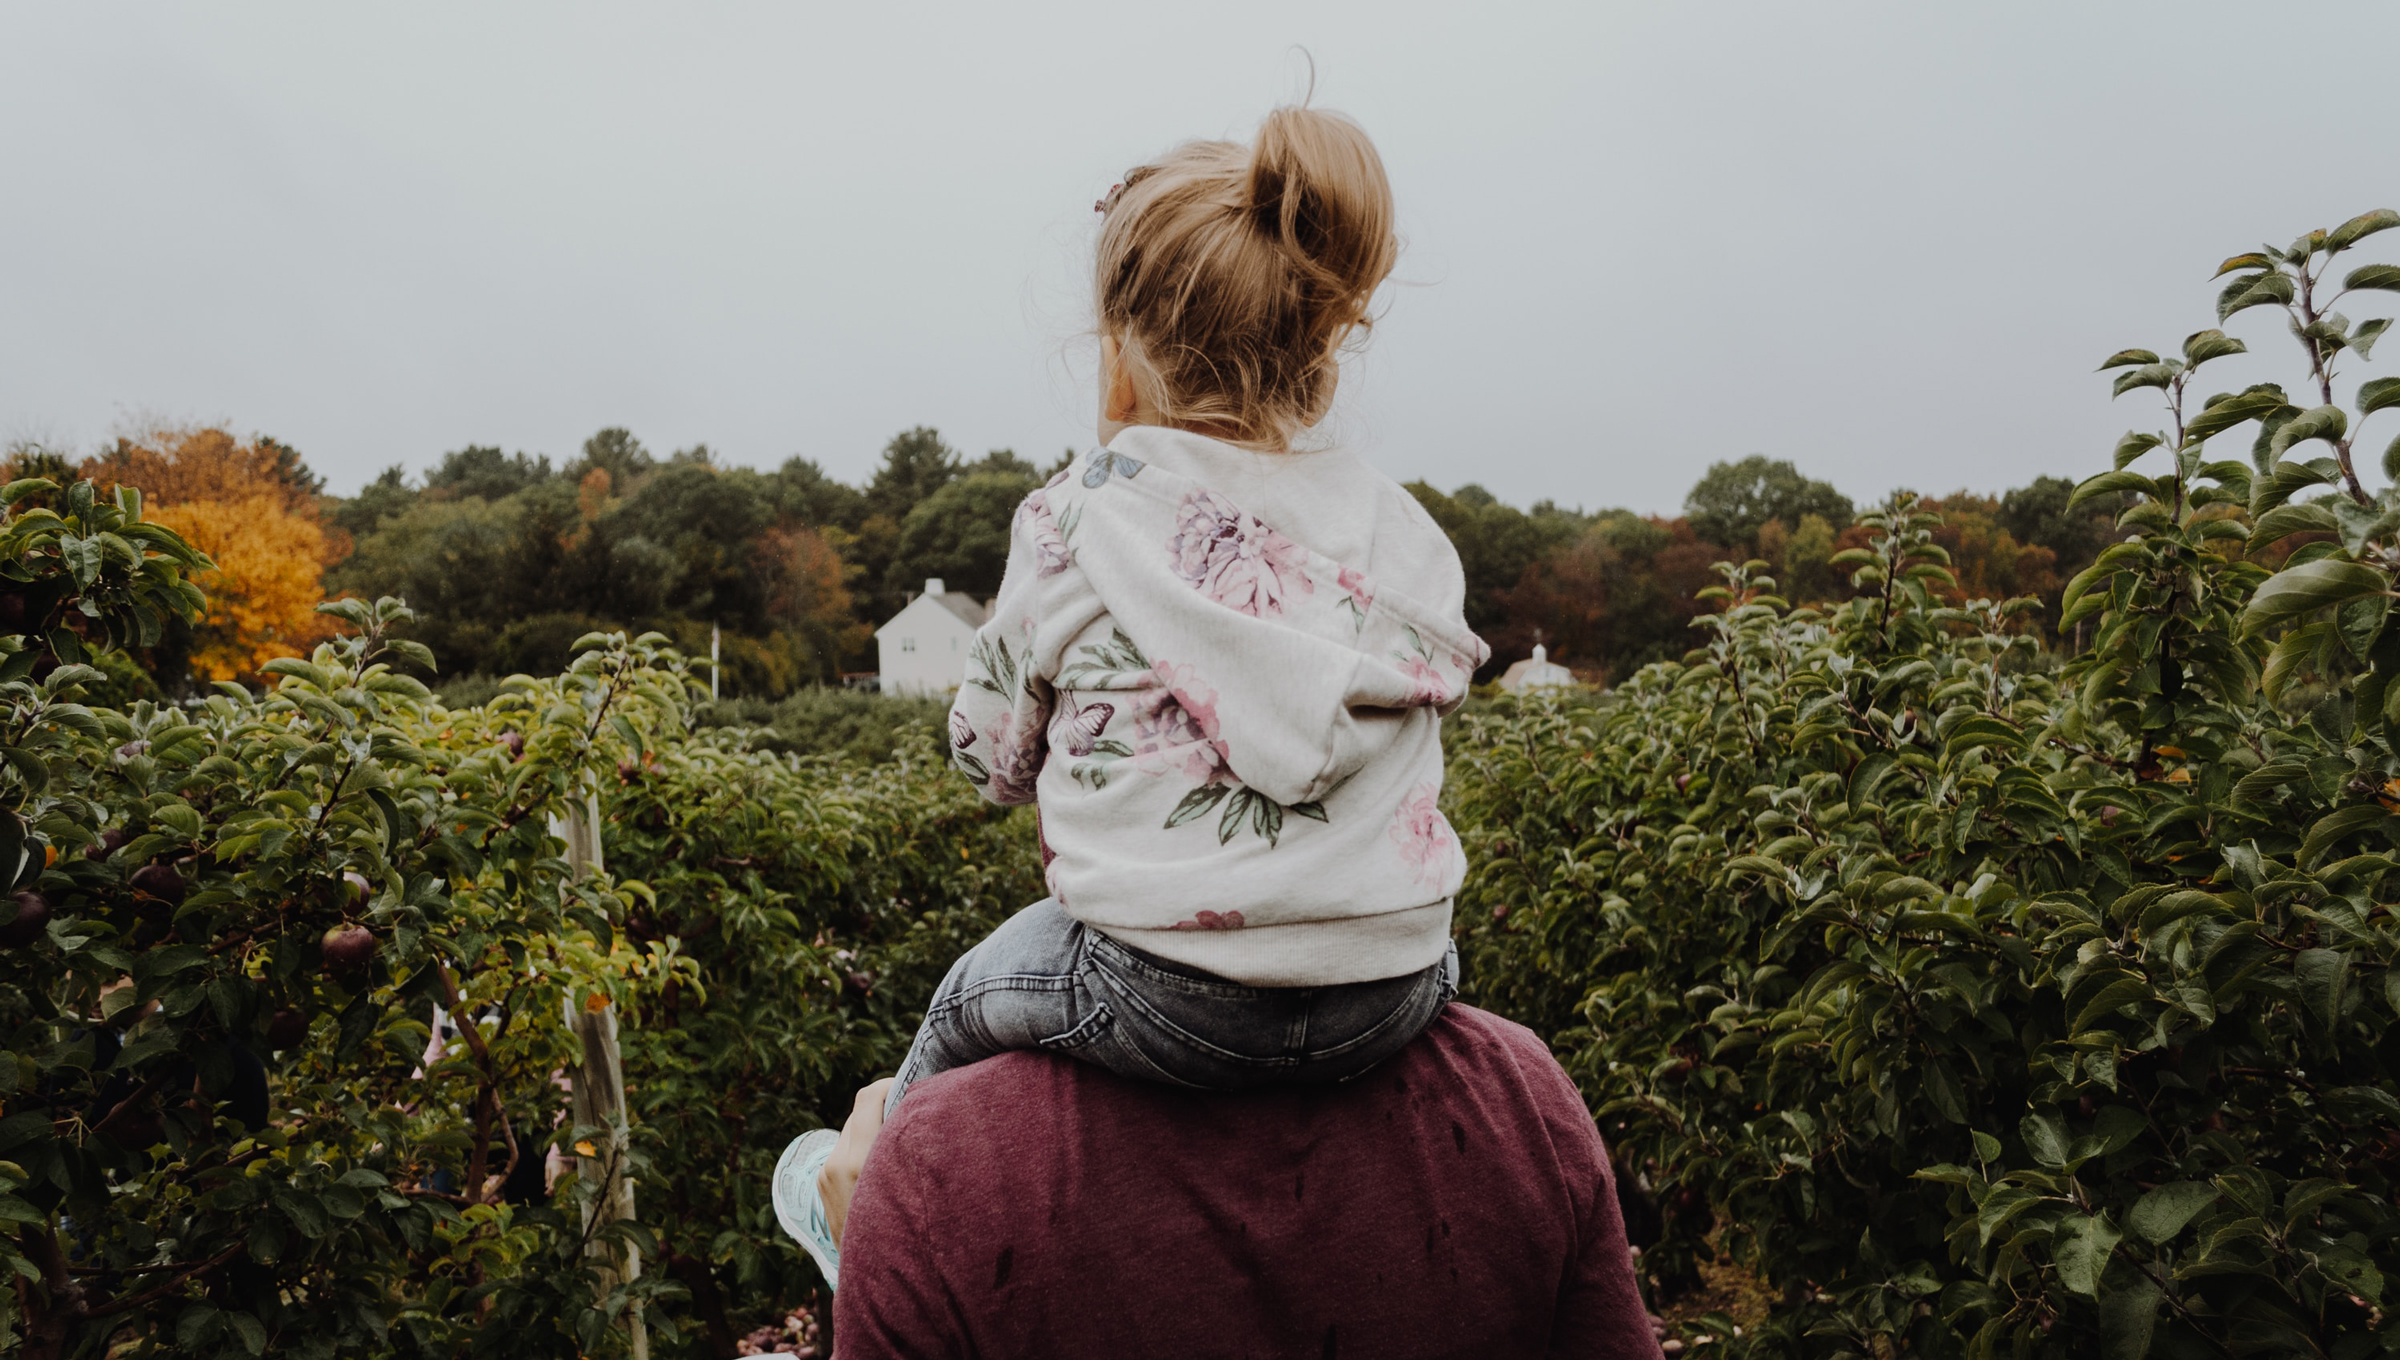 35 Things I Hope My Kids Will Say About Their Dad